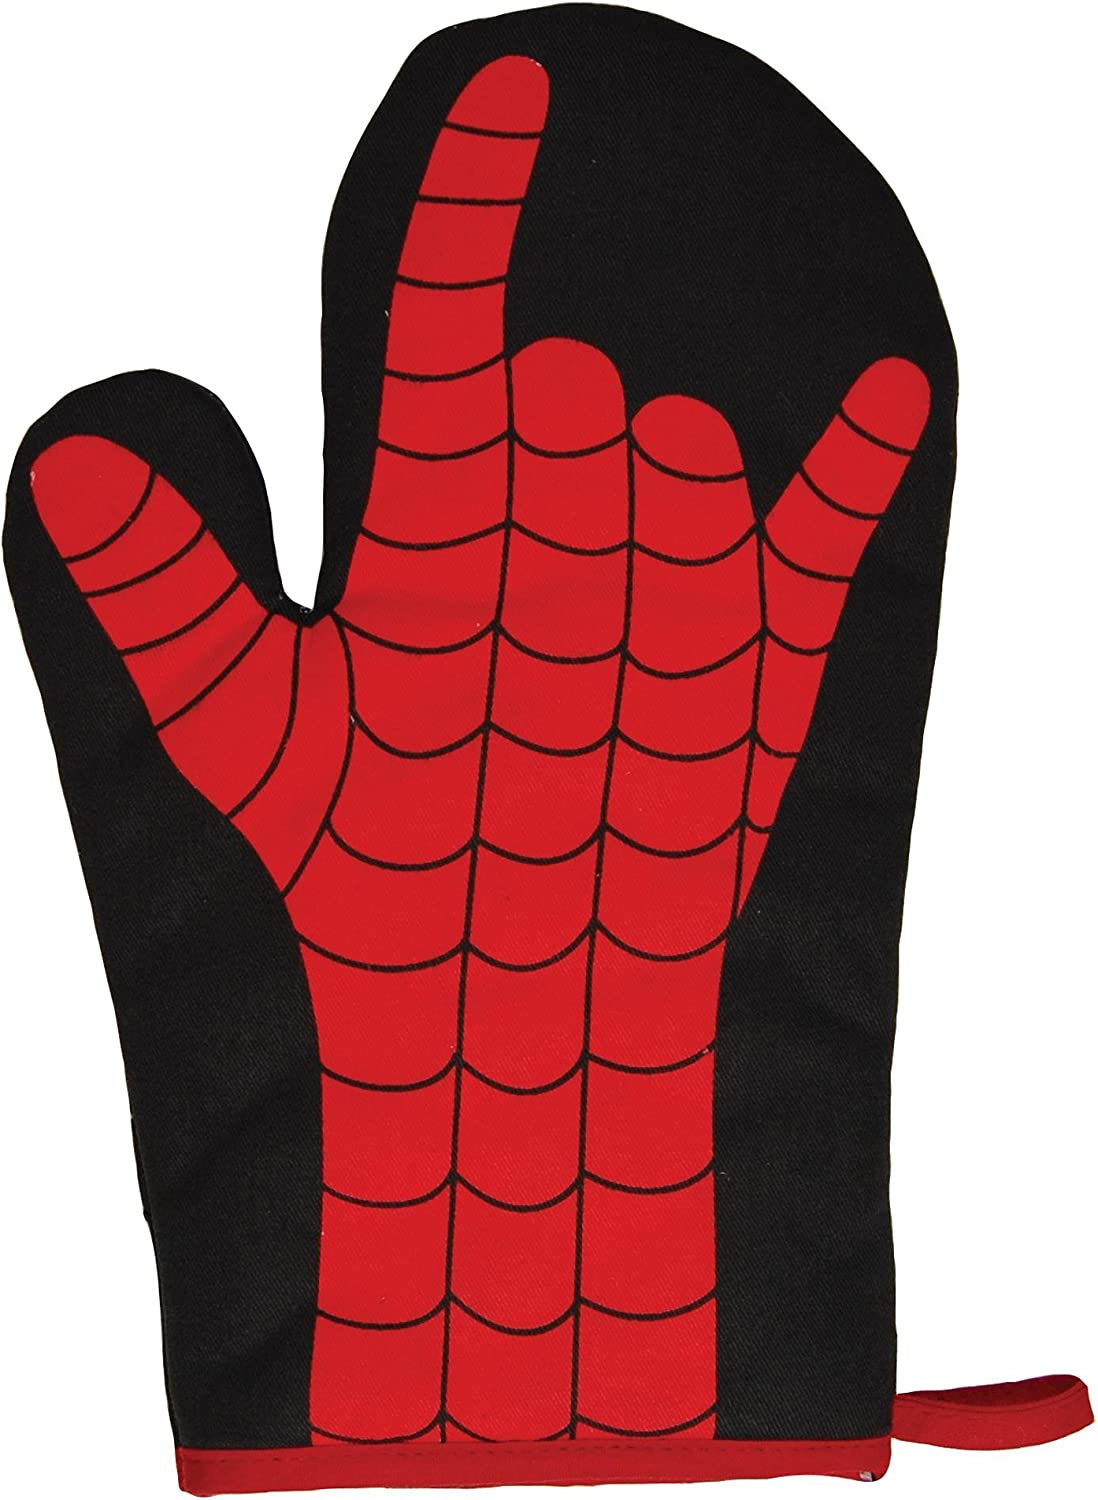 Spider Web Slinger Hand Oven Glove. Cool Funky Novelty Kitchen and Cooking Tool